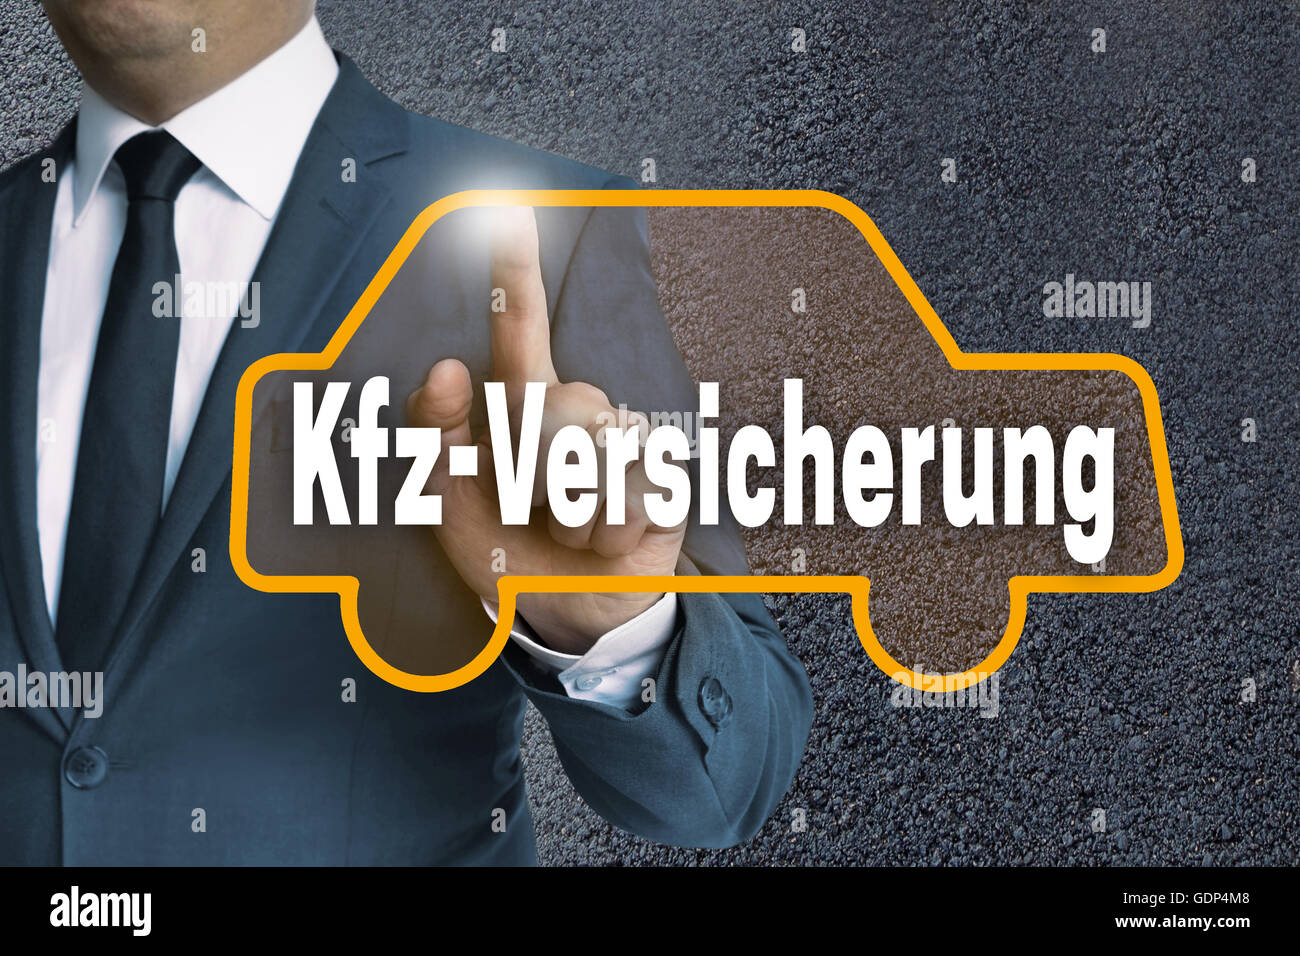 kfz versicherung (in german car insurance) auto touchscreen is operated by businessman concept. - Stock Image